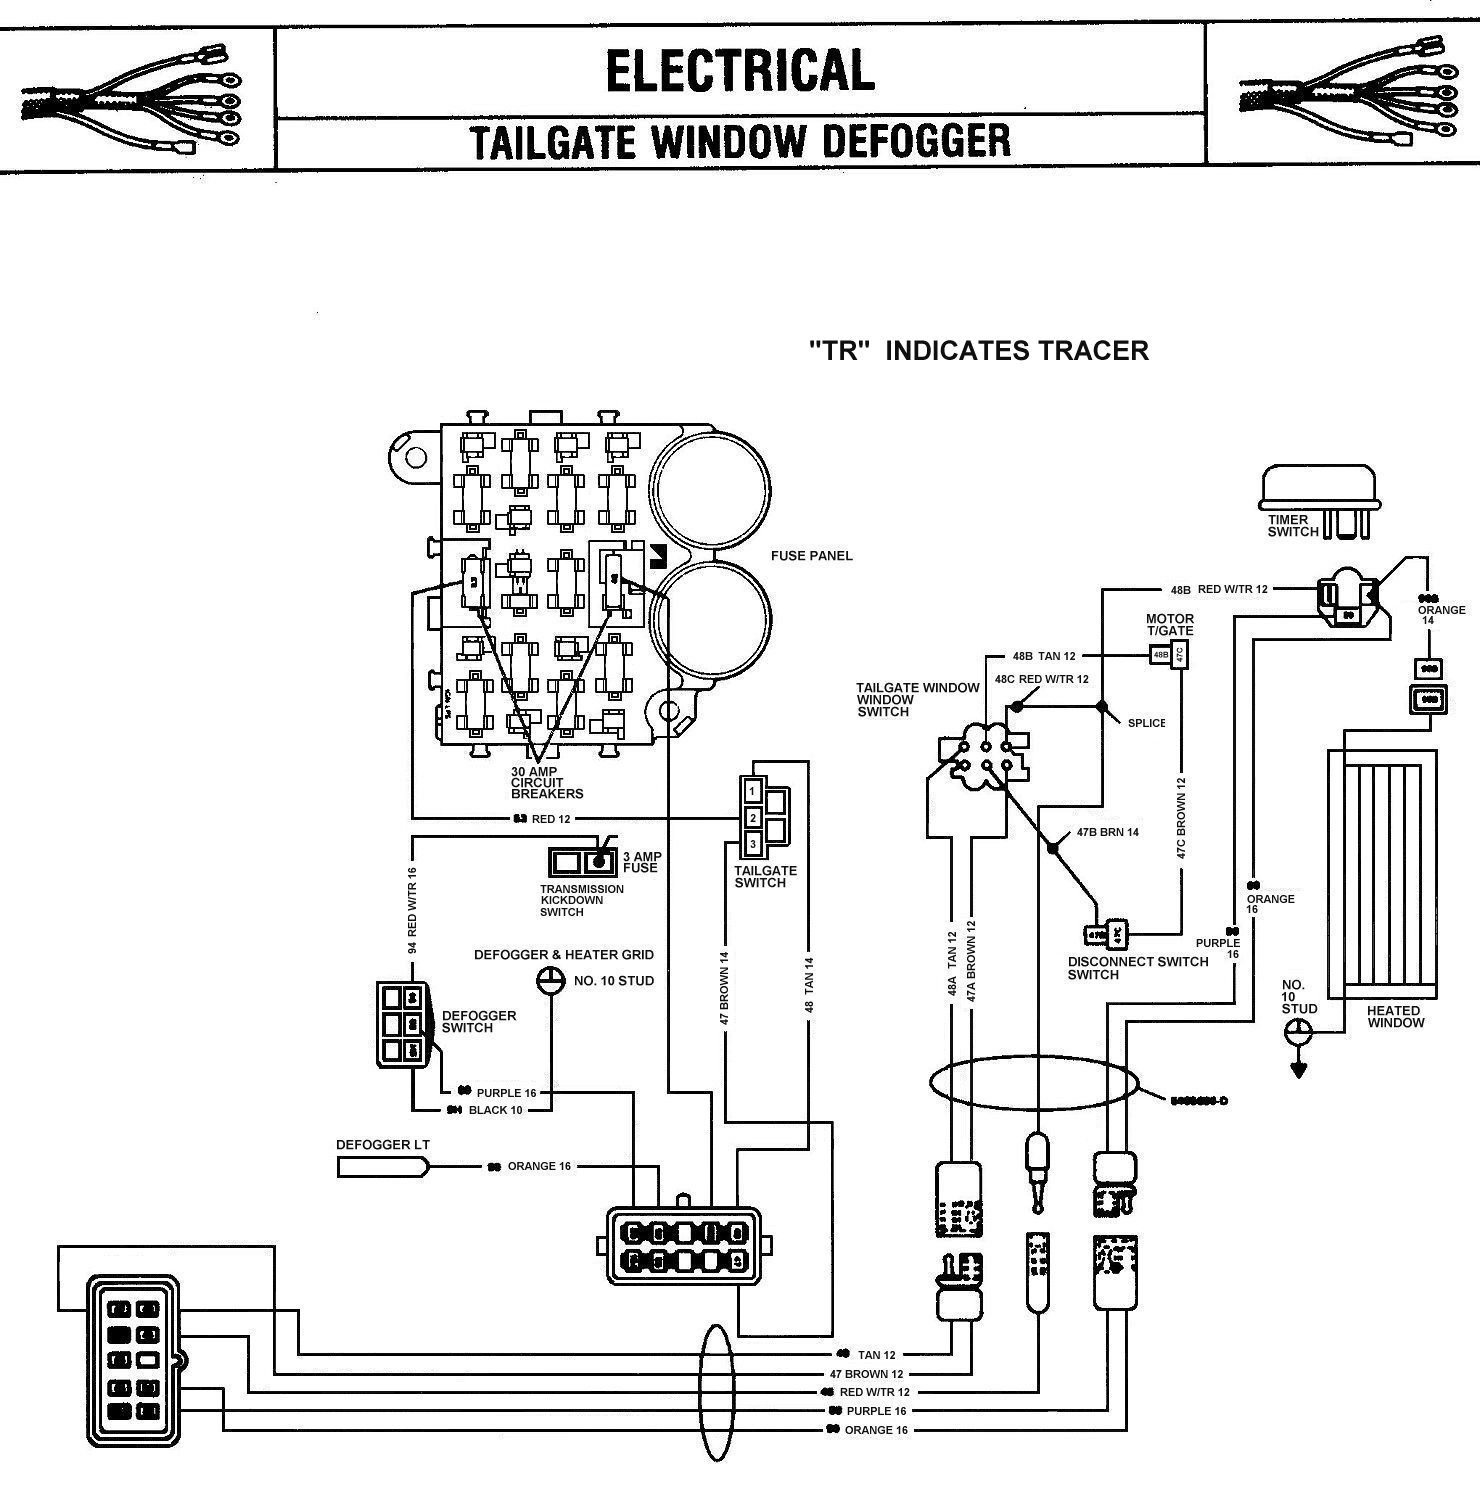 1974 Jeep J 20 Wiring Diagram - Wiring Diagrams Hidden J Swap Wiring Diagram on